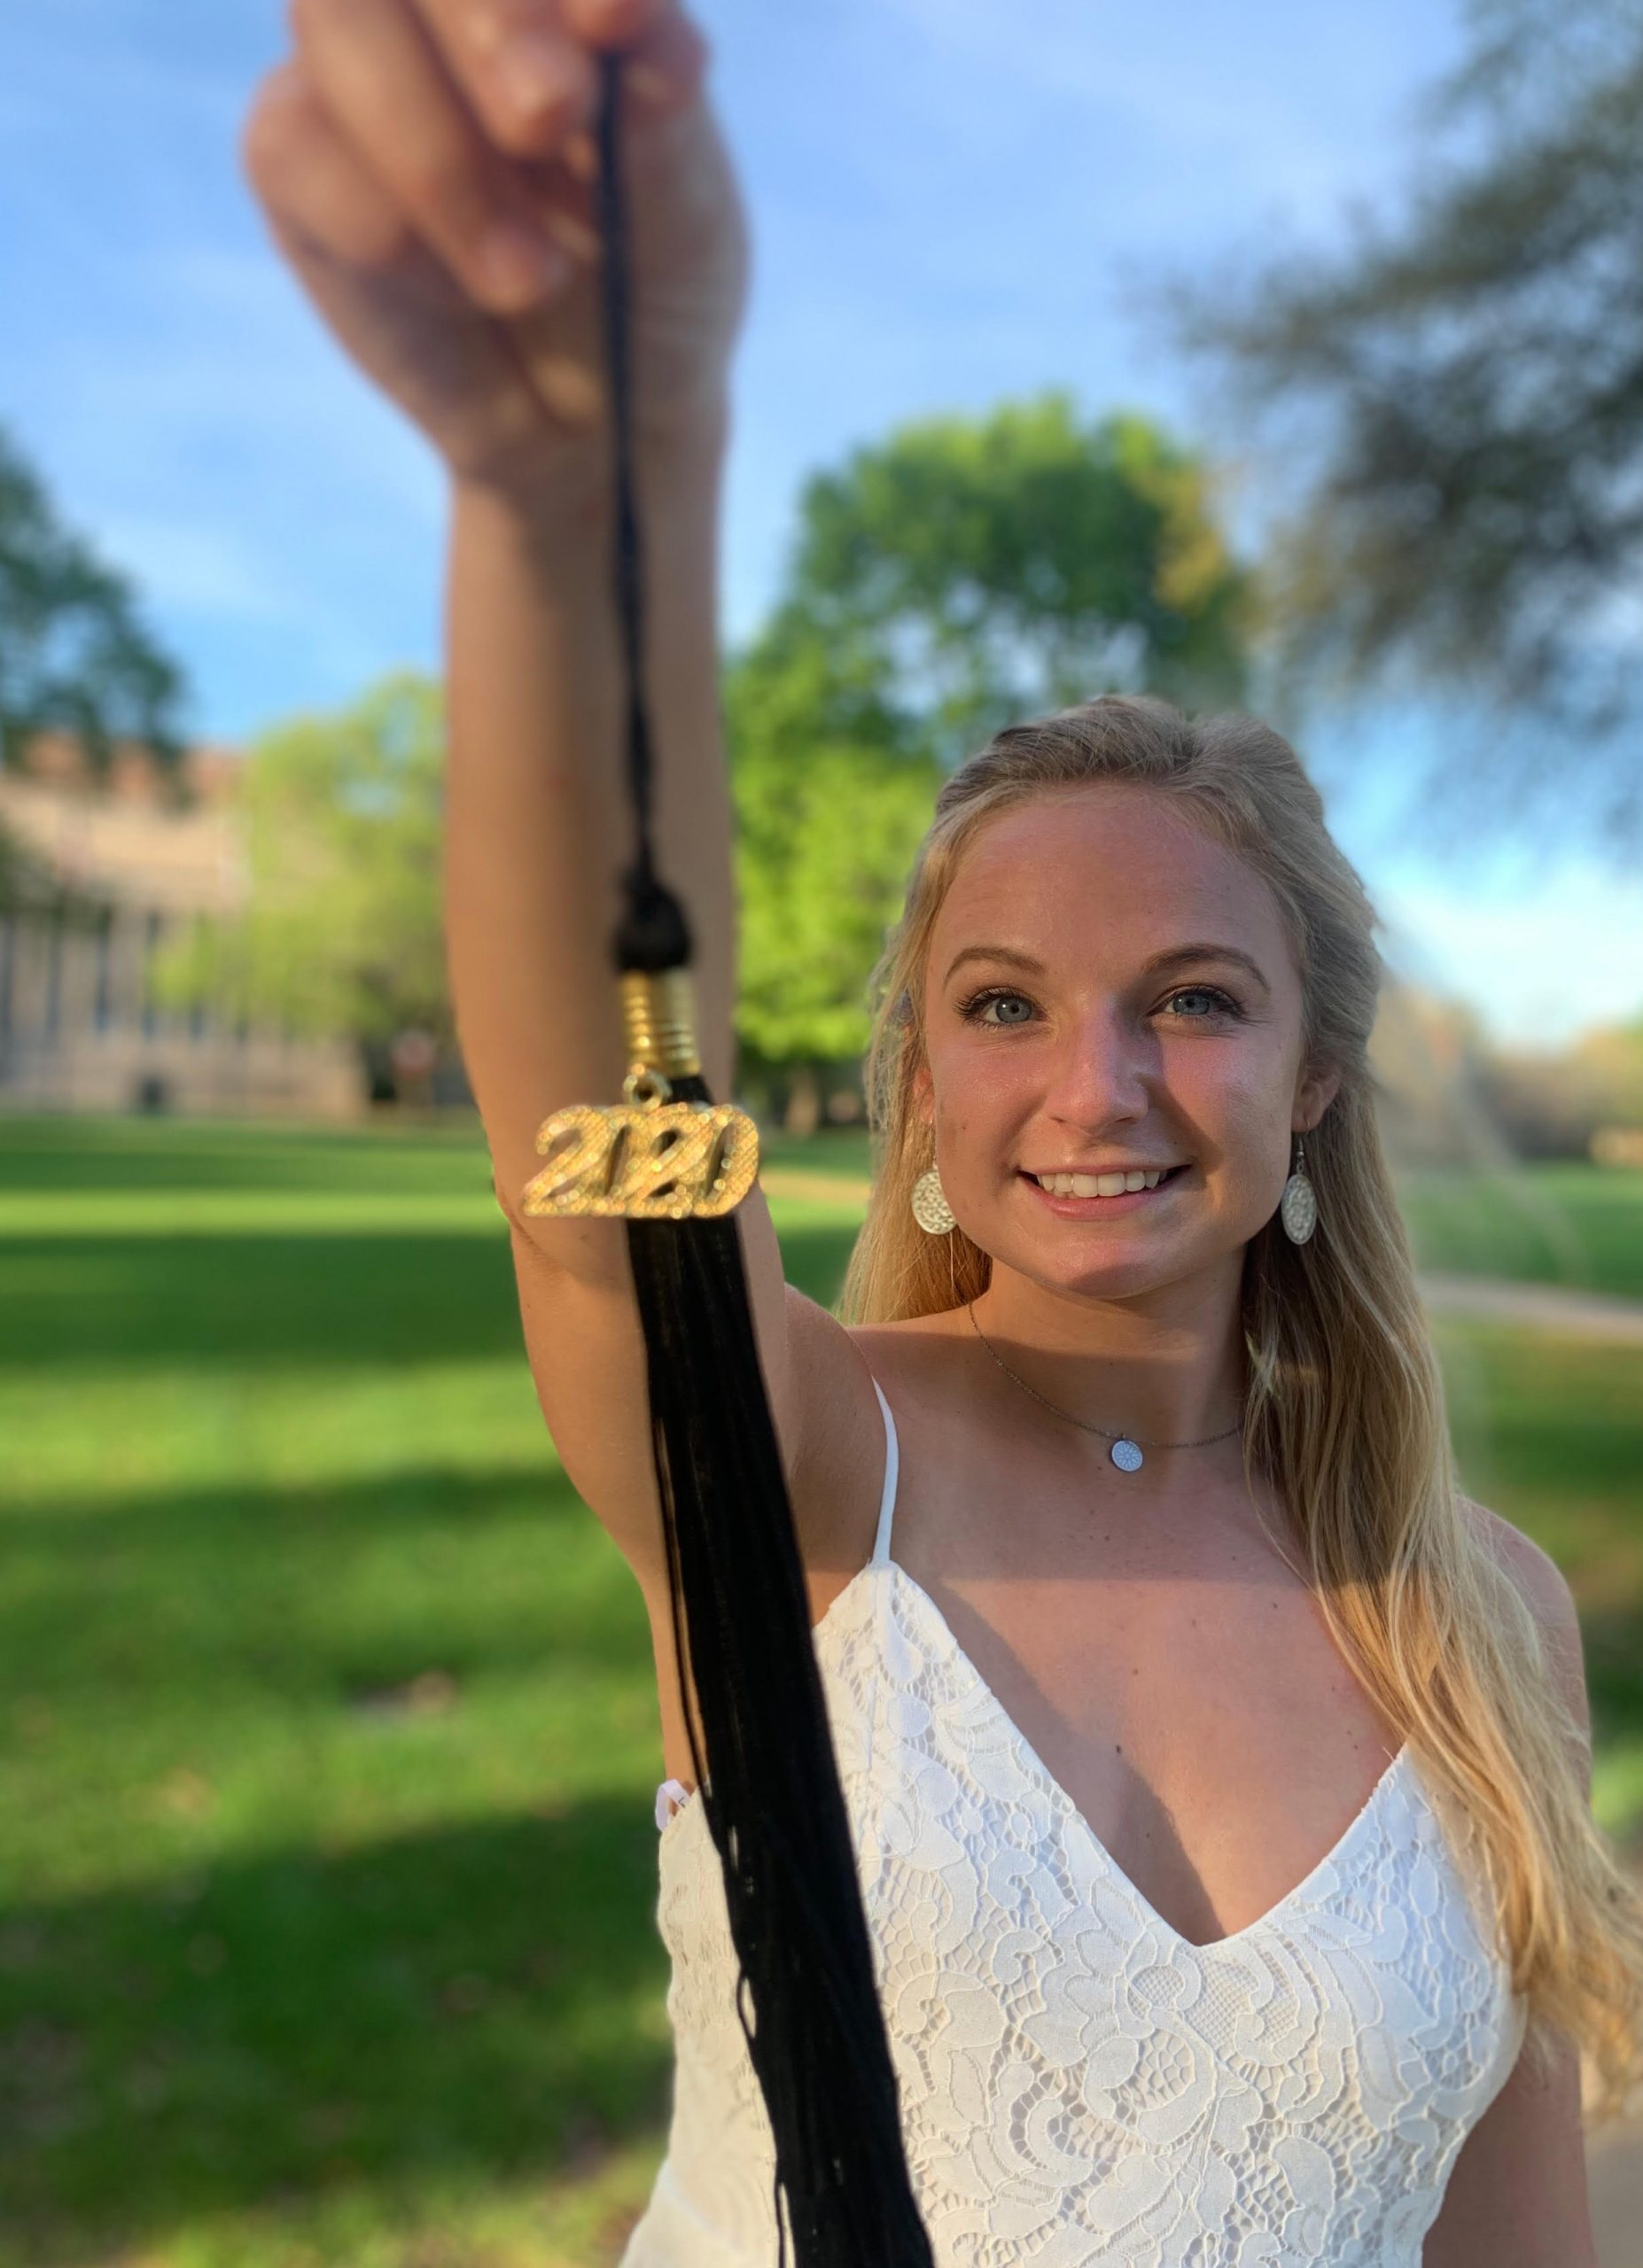 Abby Ruby from Mechanical Engineering